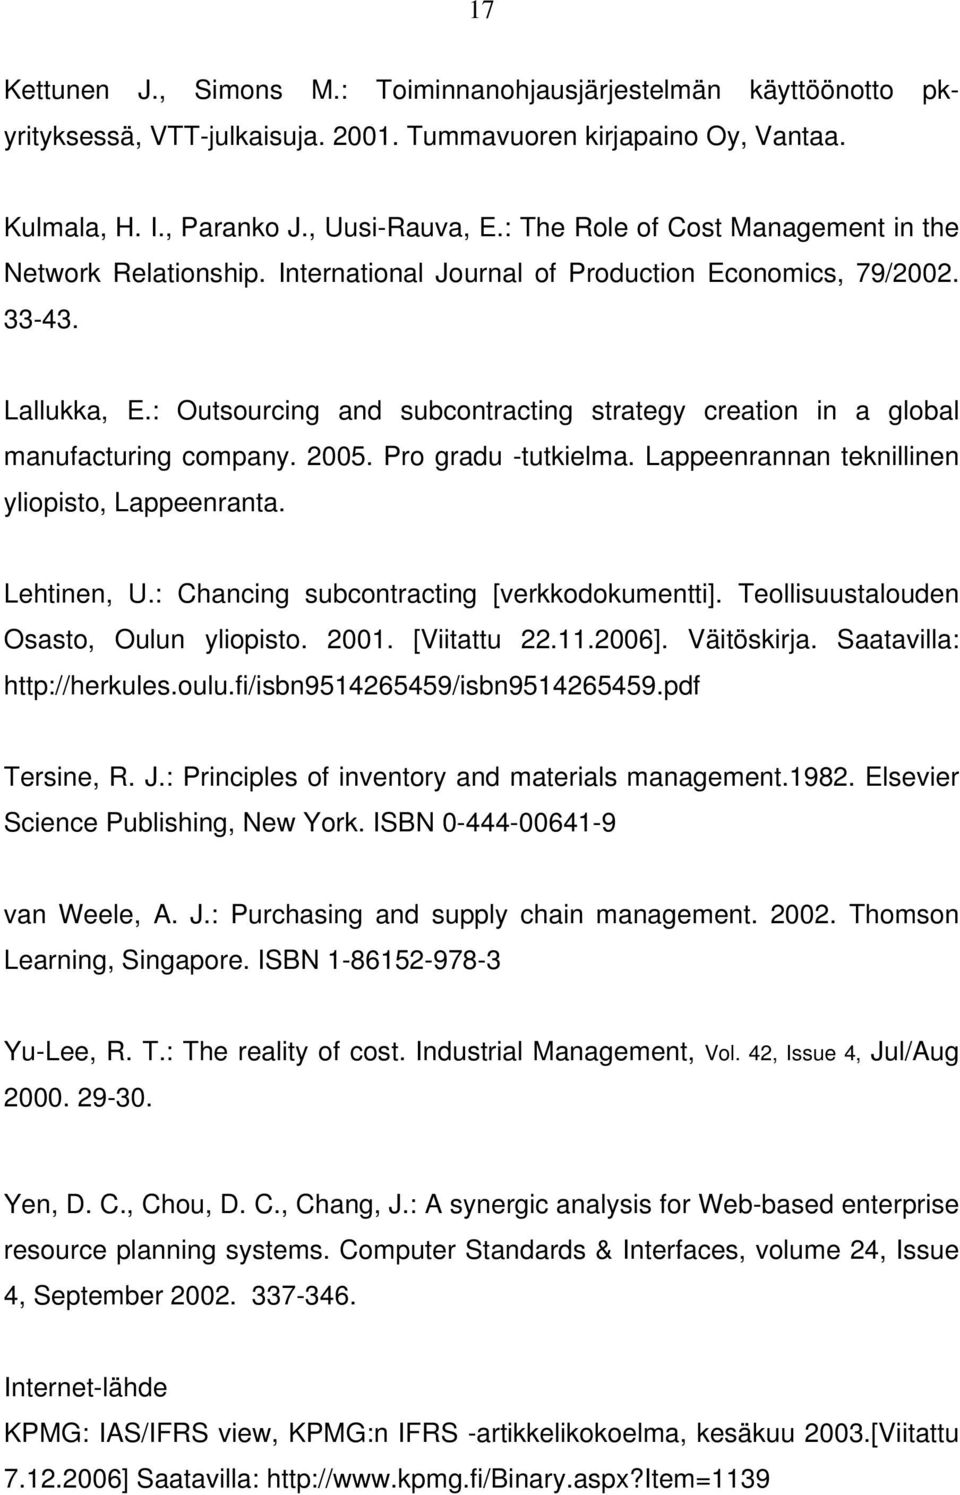 : Outsourcing and subcontracting strategy creation in a global manufacturing company. 2005. Pro gradu -tutkielma. Lappeenrannan teknillinen yliopisto, Lappeenranta. Lehtinen, U.